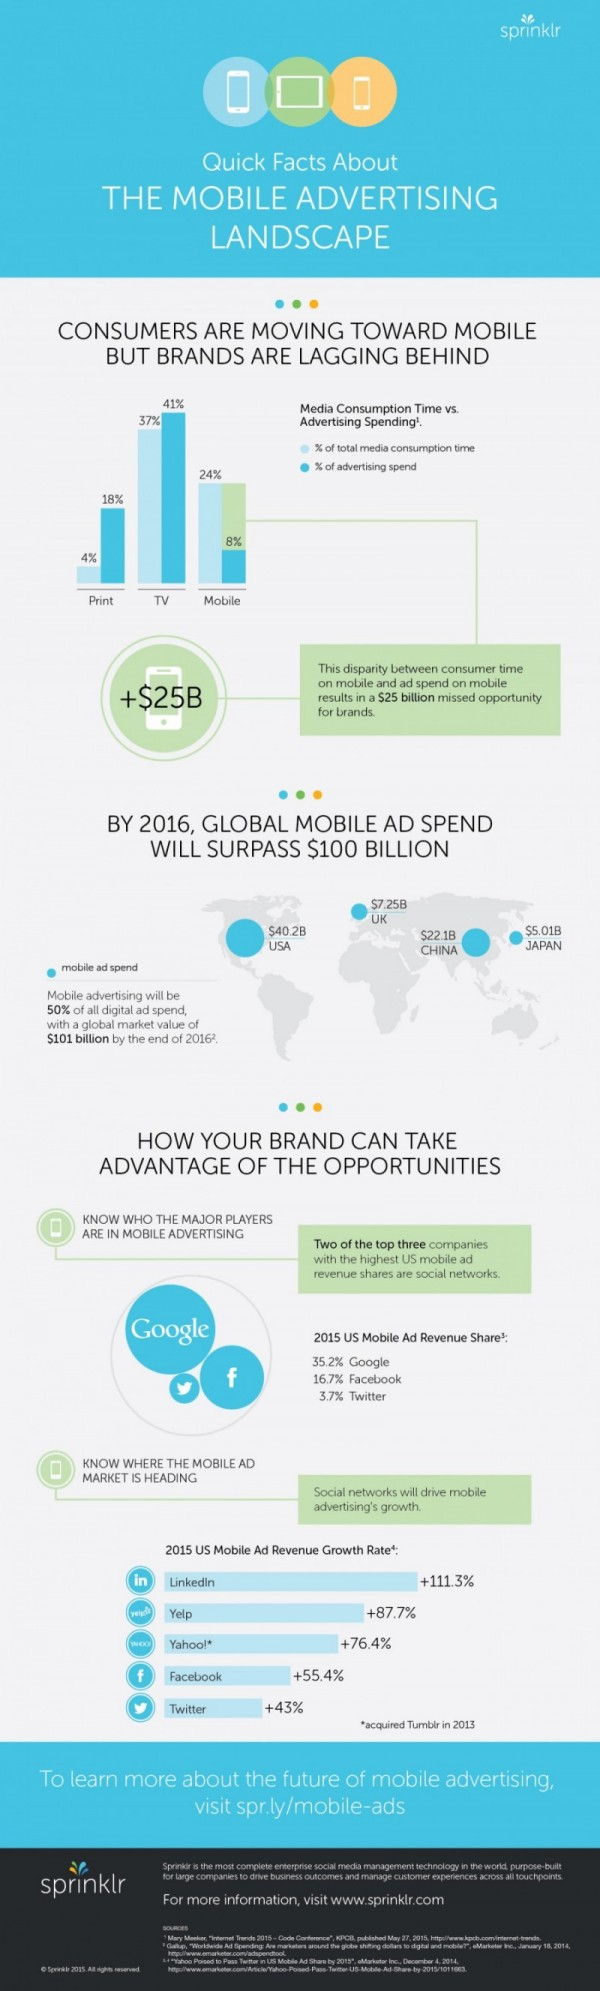 INFOGRAPHIC-Quick-Facts-About-The-Mobile-Advertising-Landscape-e1437584231241